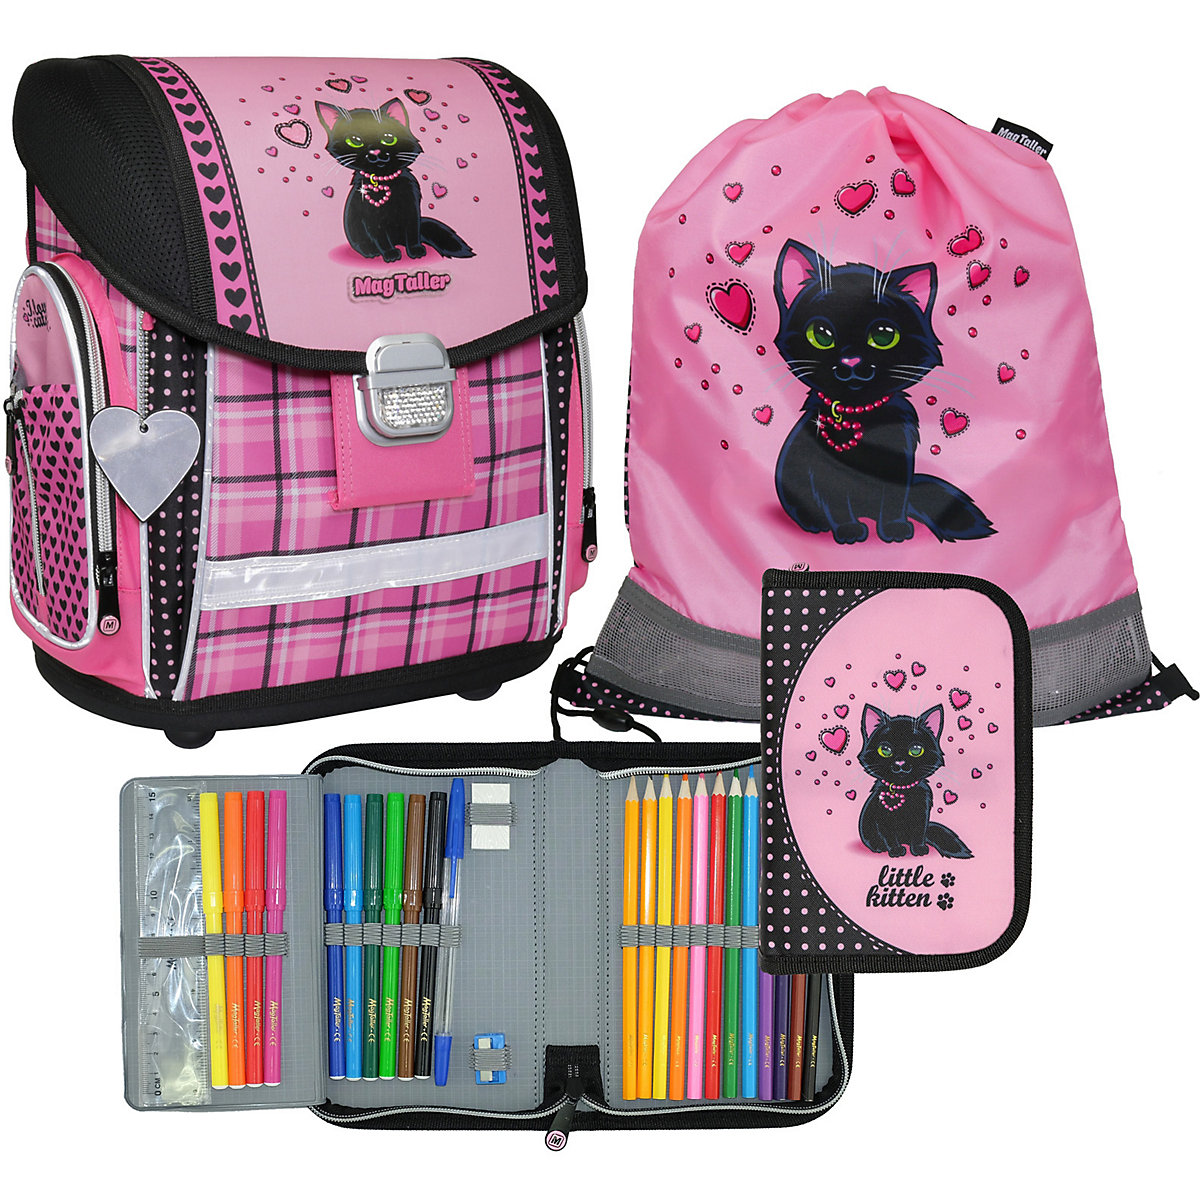 School Bags MAGTALLER 11154944 schoolbag backpack knapsacks orthopedic bag for boy and girl animals flower sprints school bags magtaller 11154976 schoolbag backpack knapsacks orthopedic bag for boy and girl animals flower sprints